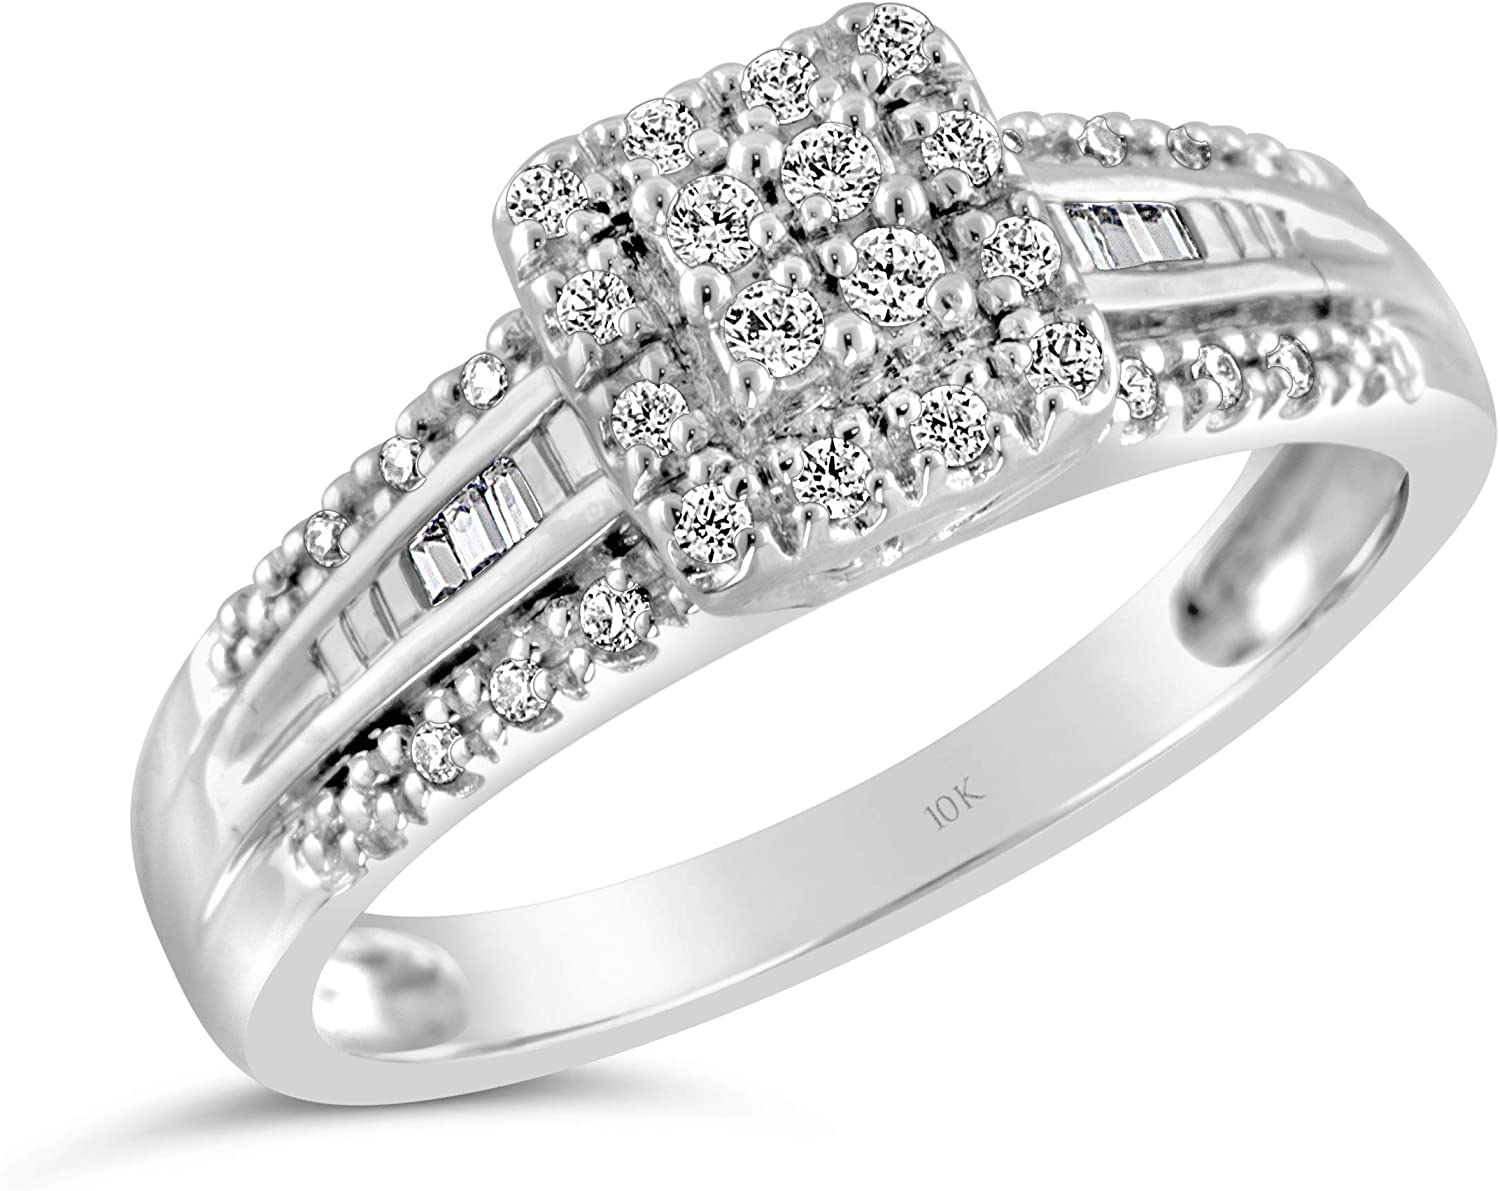 Brilliant Expressions 10K White Gold 1/5 Cttw Conflict Free Diamond Square Halo and Baguette Channel Band Engagement Ring (I-J Color, I2-I3 Clarity)